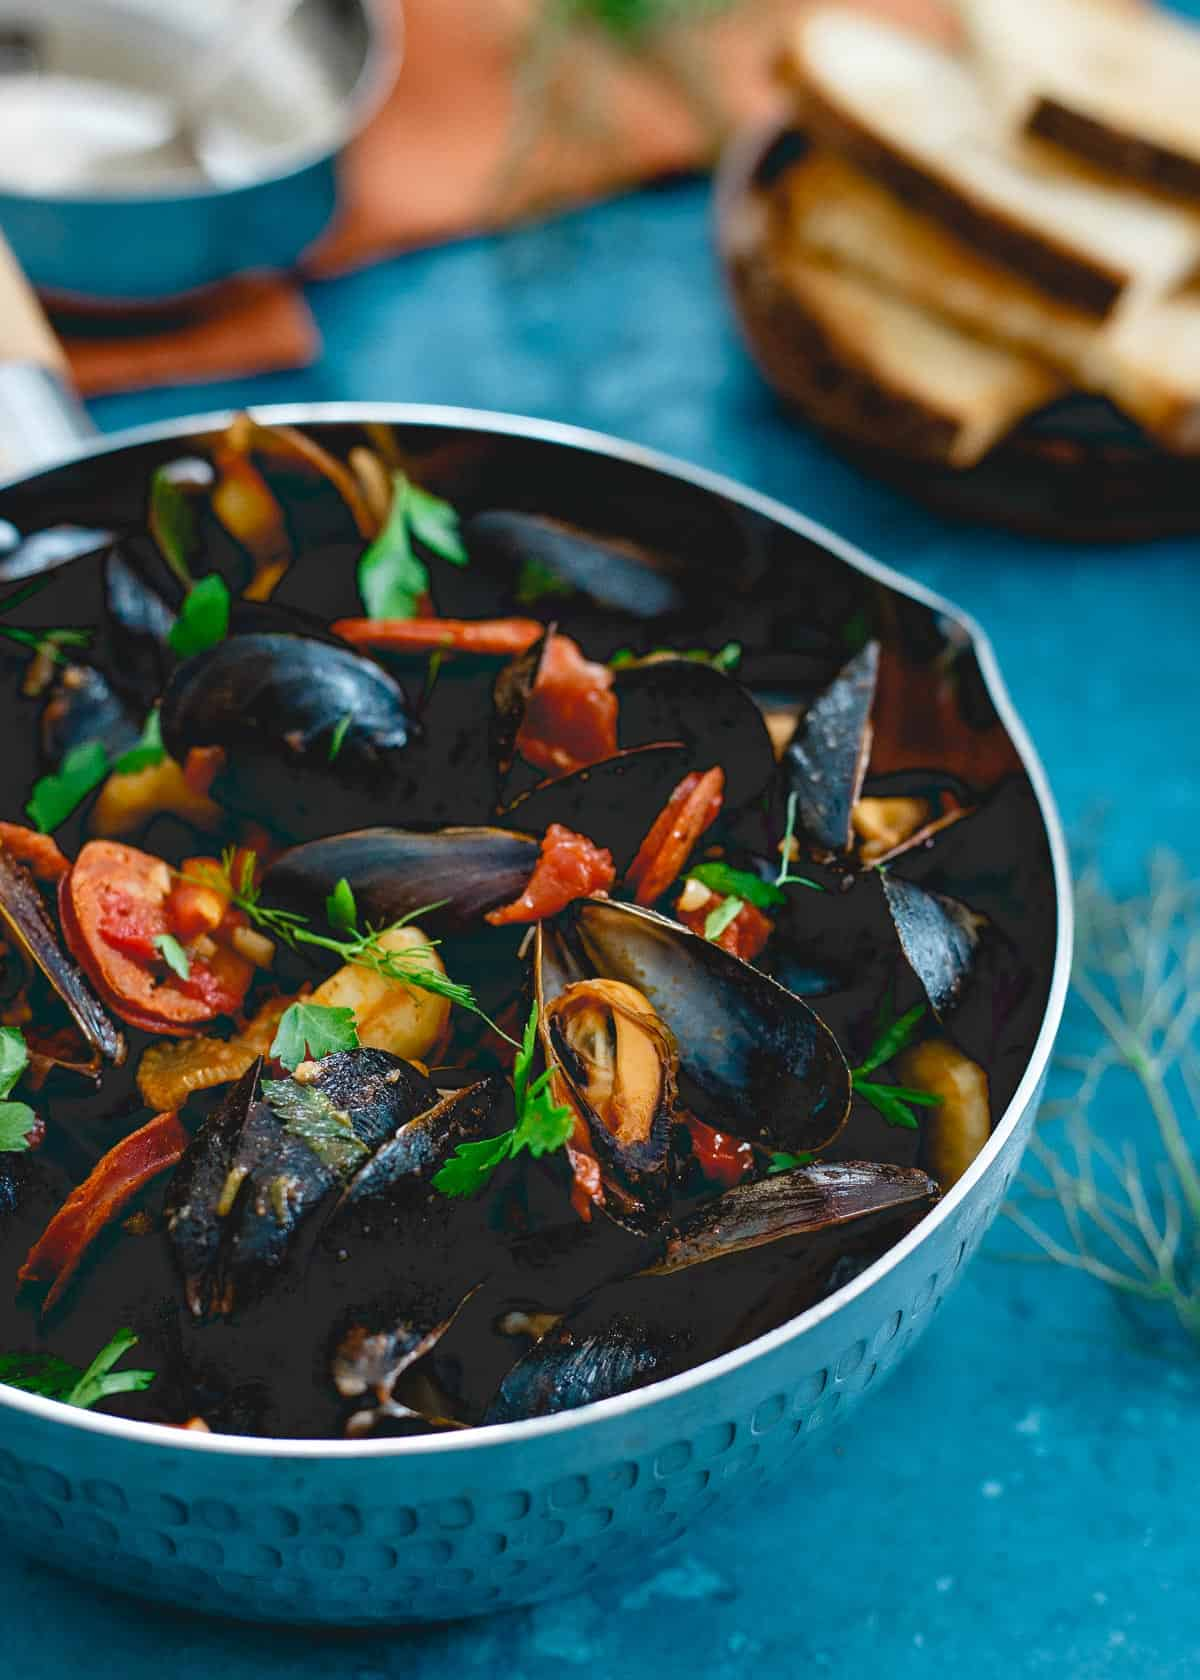 These spicy chorizo mussels are an easy, one pot meal made in 20 minutes with spicy dried chiles, fennel and chorizo in a chunky tomato broth. Serve with some warm crusty bread for a seafood feast!